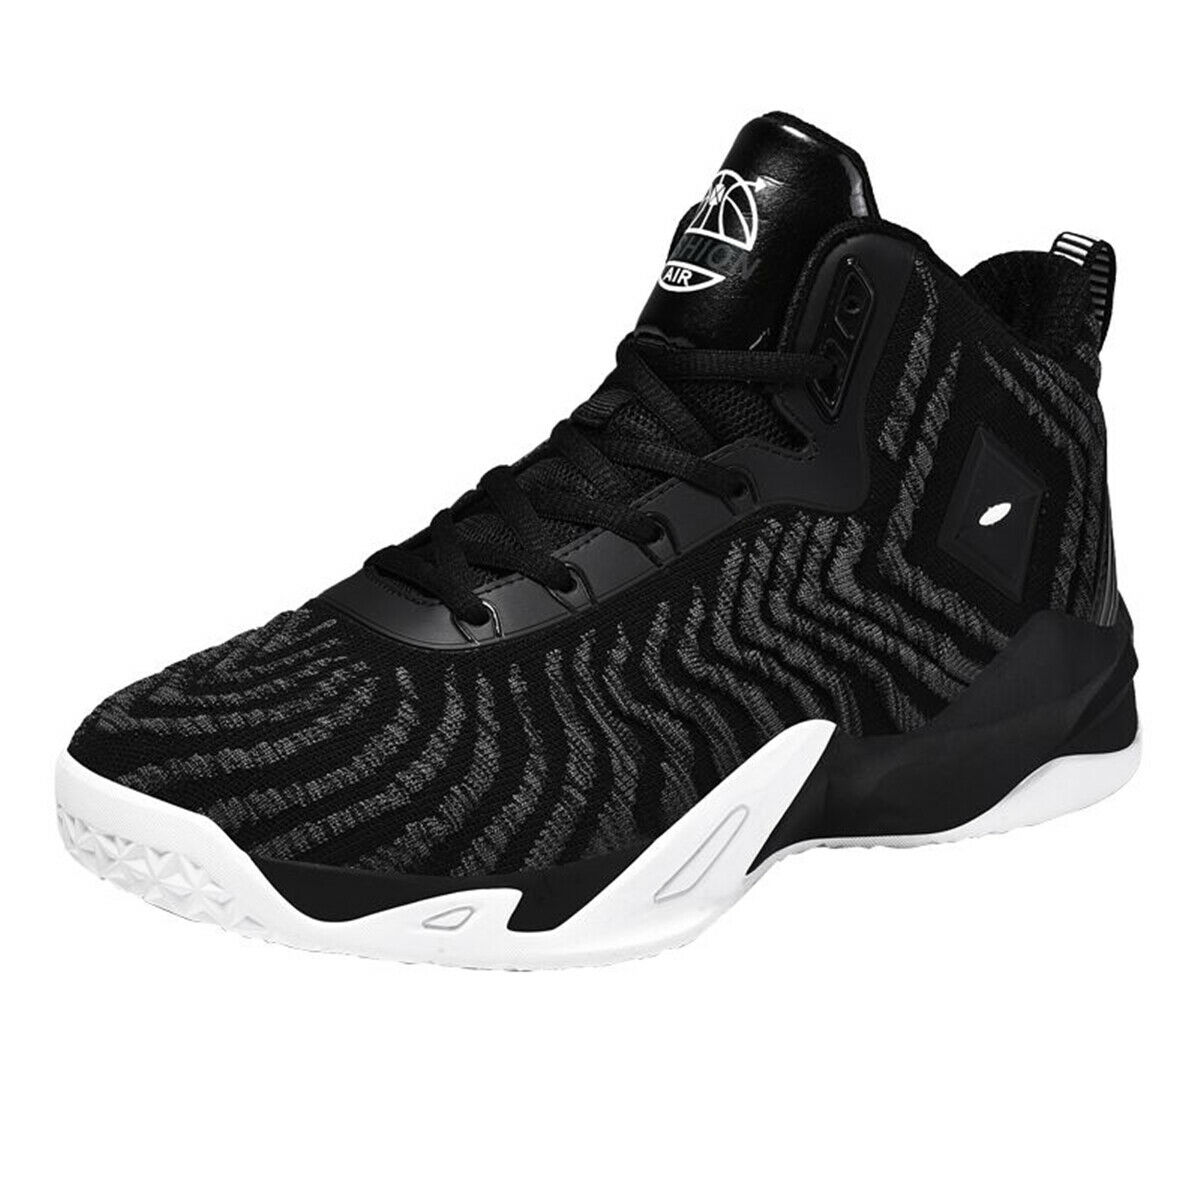 Mens Sports Breathable Basketball shoes Mid Top Mesh Non-slip Athletic Casual